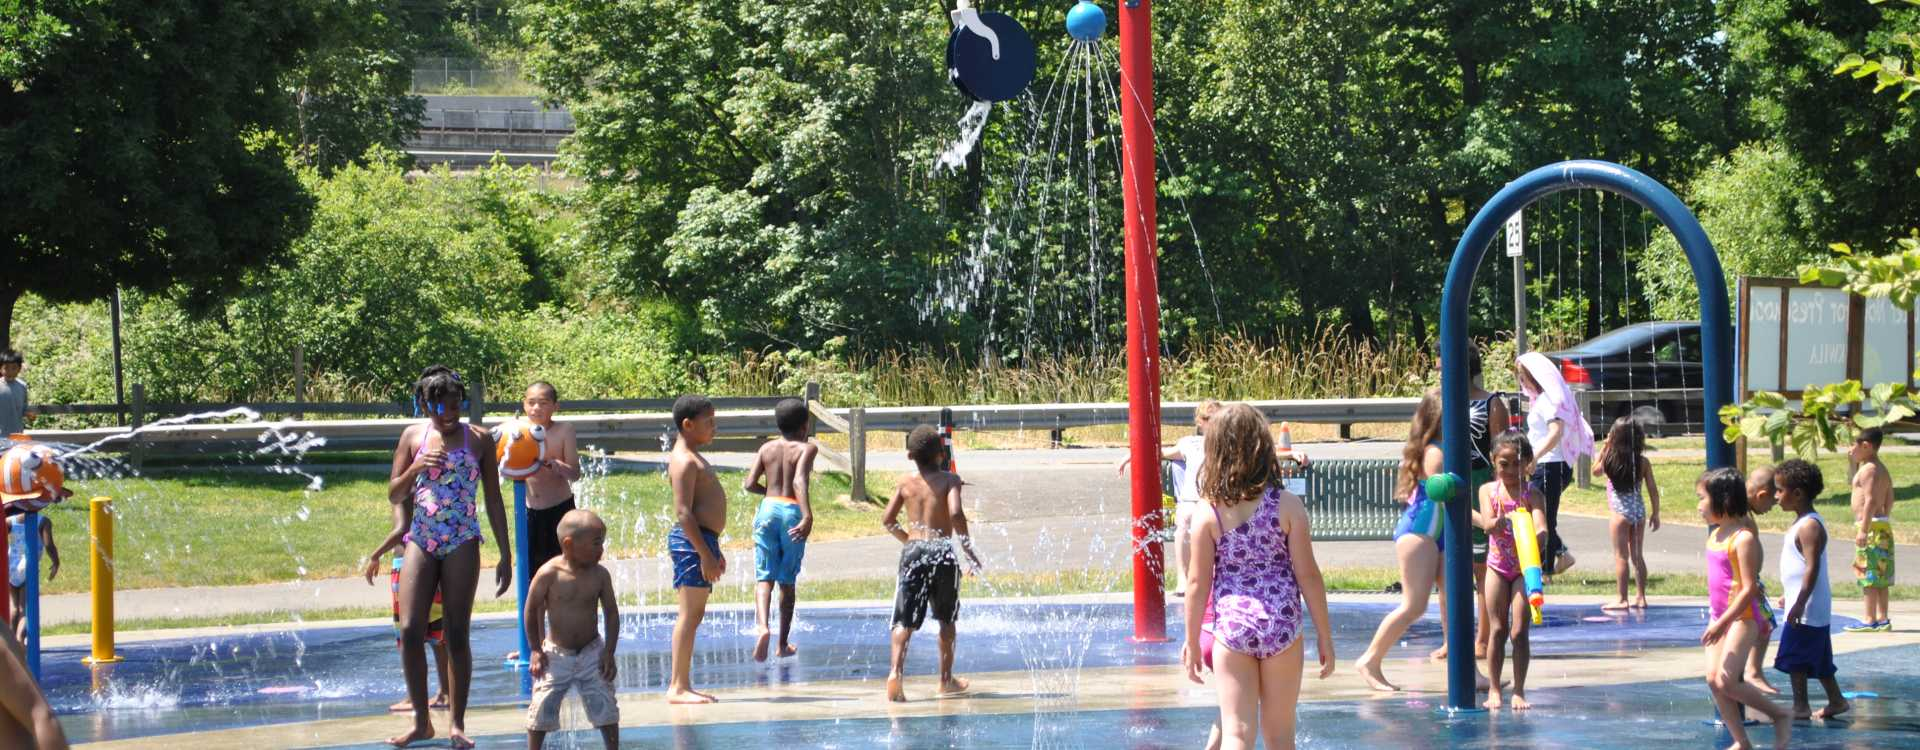 Tukwila Splash and Spray Park